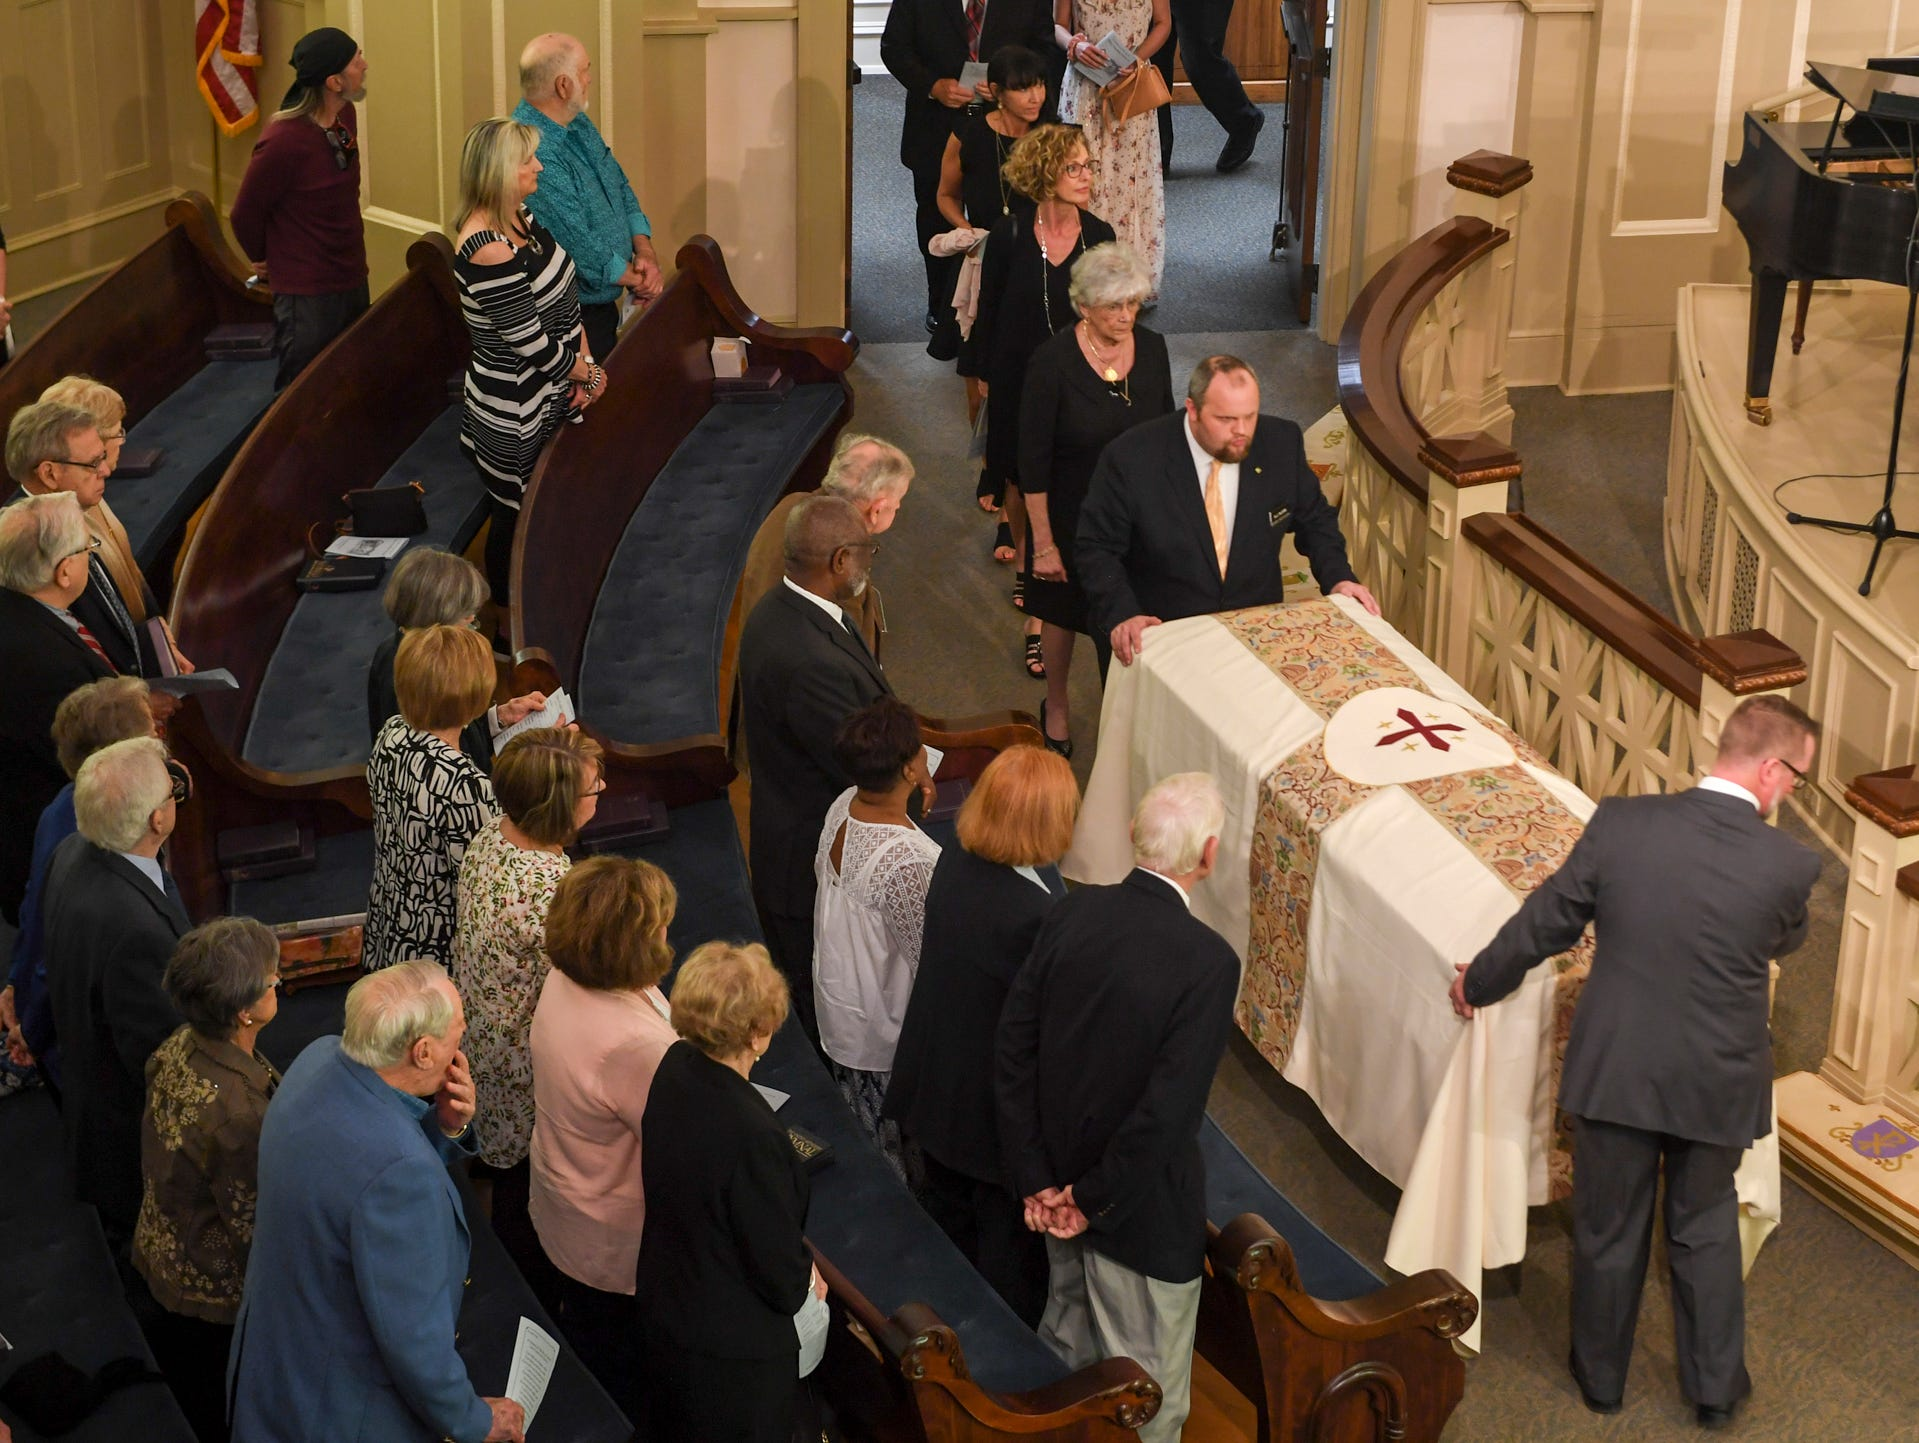 Funeral directors wheel Henry Harrison's casket into the sanctuary of First United Methodist Church during his Celebration of Life service, Friday, April 26, 2019.